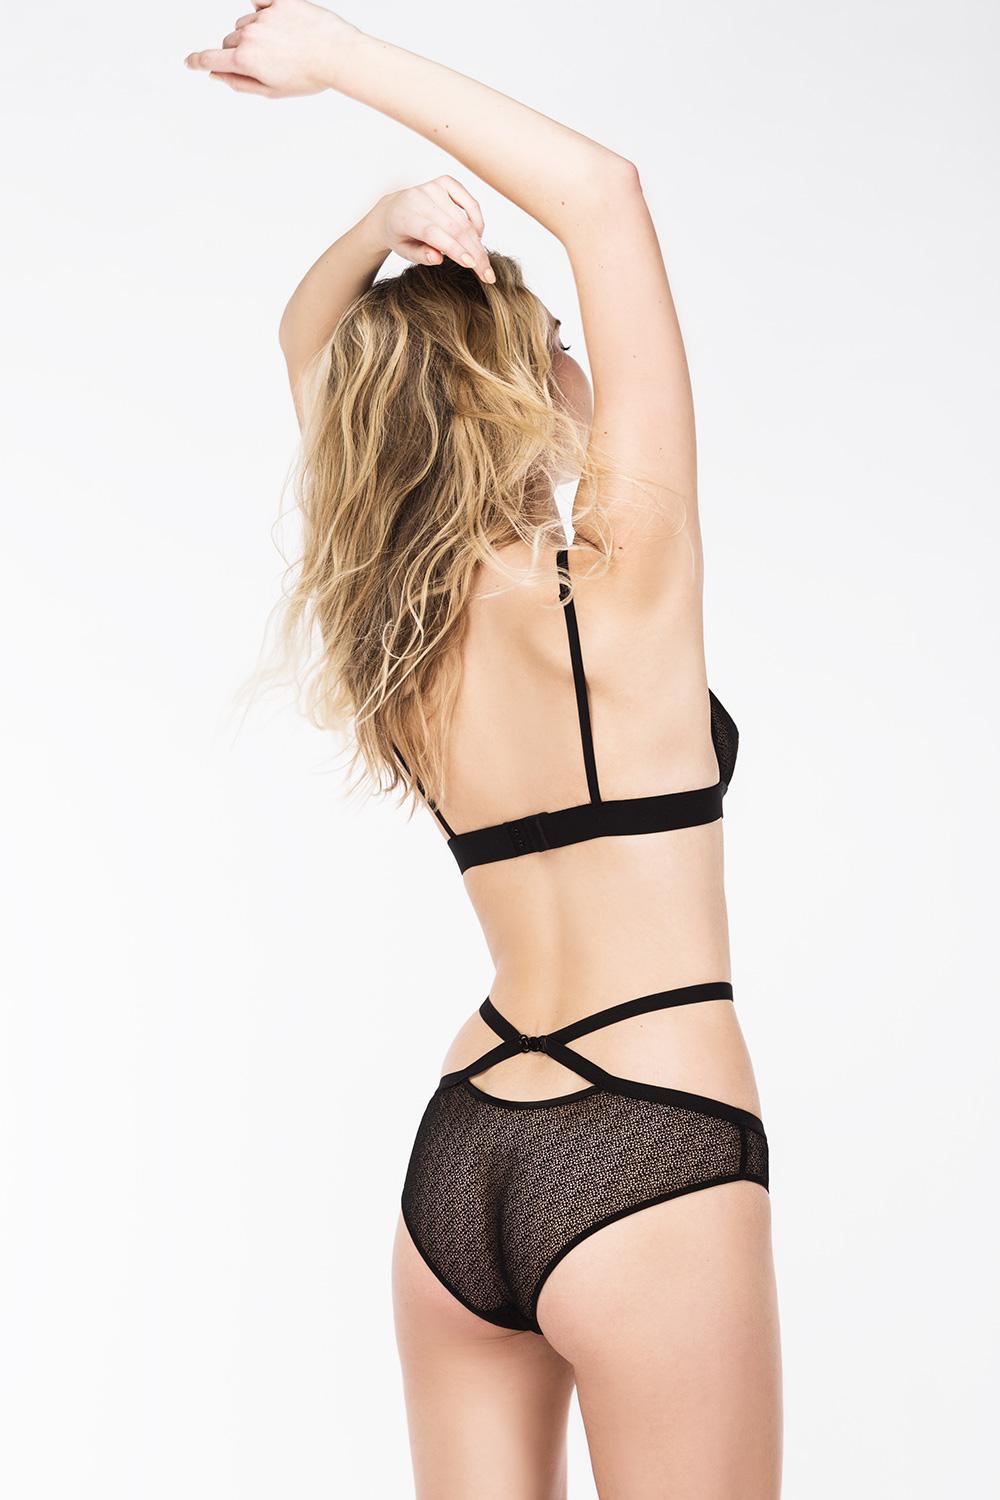 Kriss Soonik Spiderweb knickers